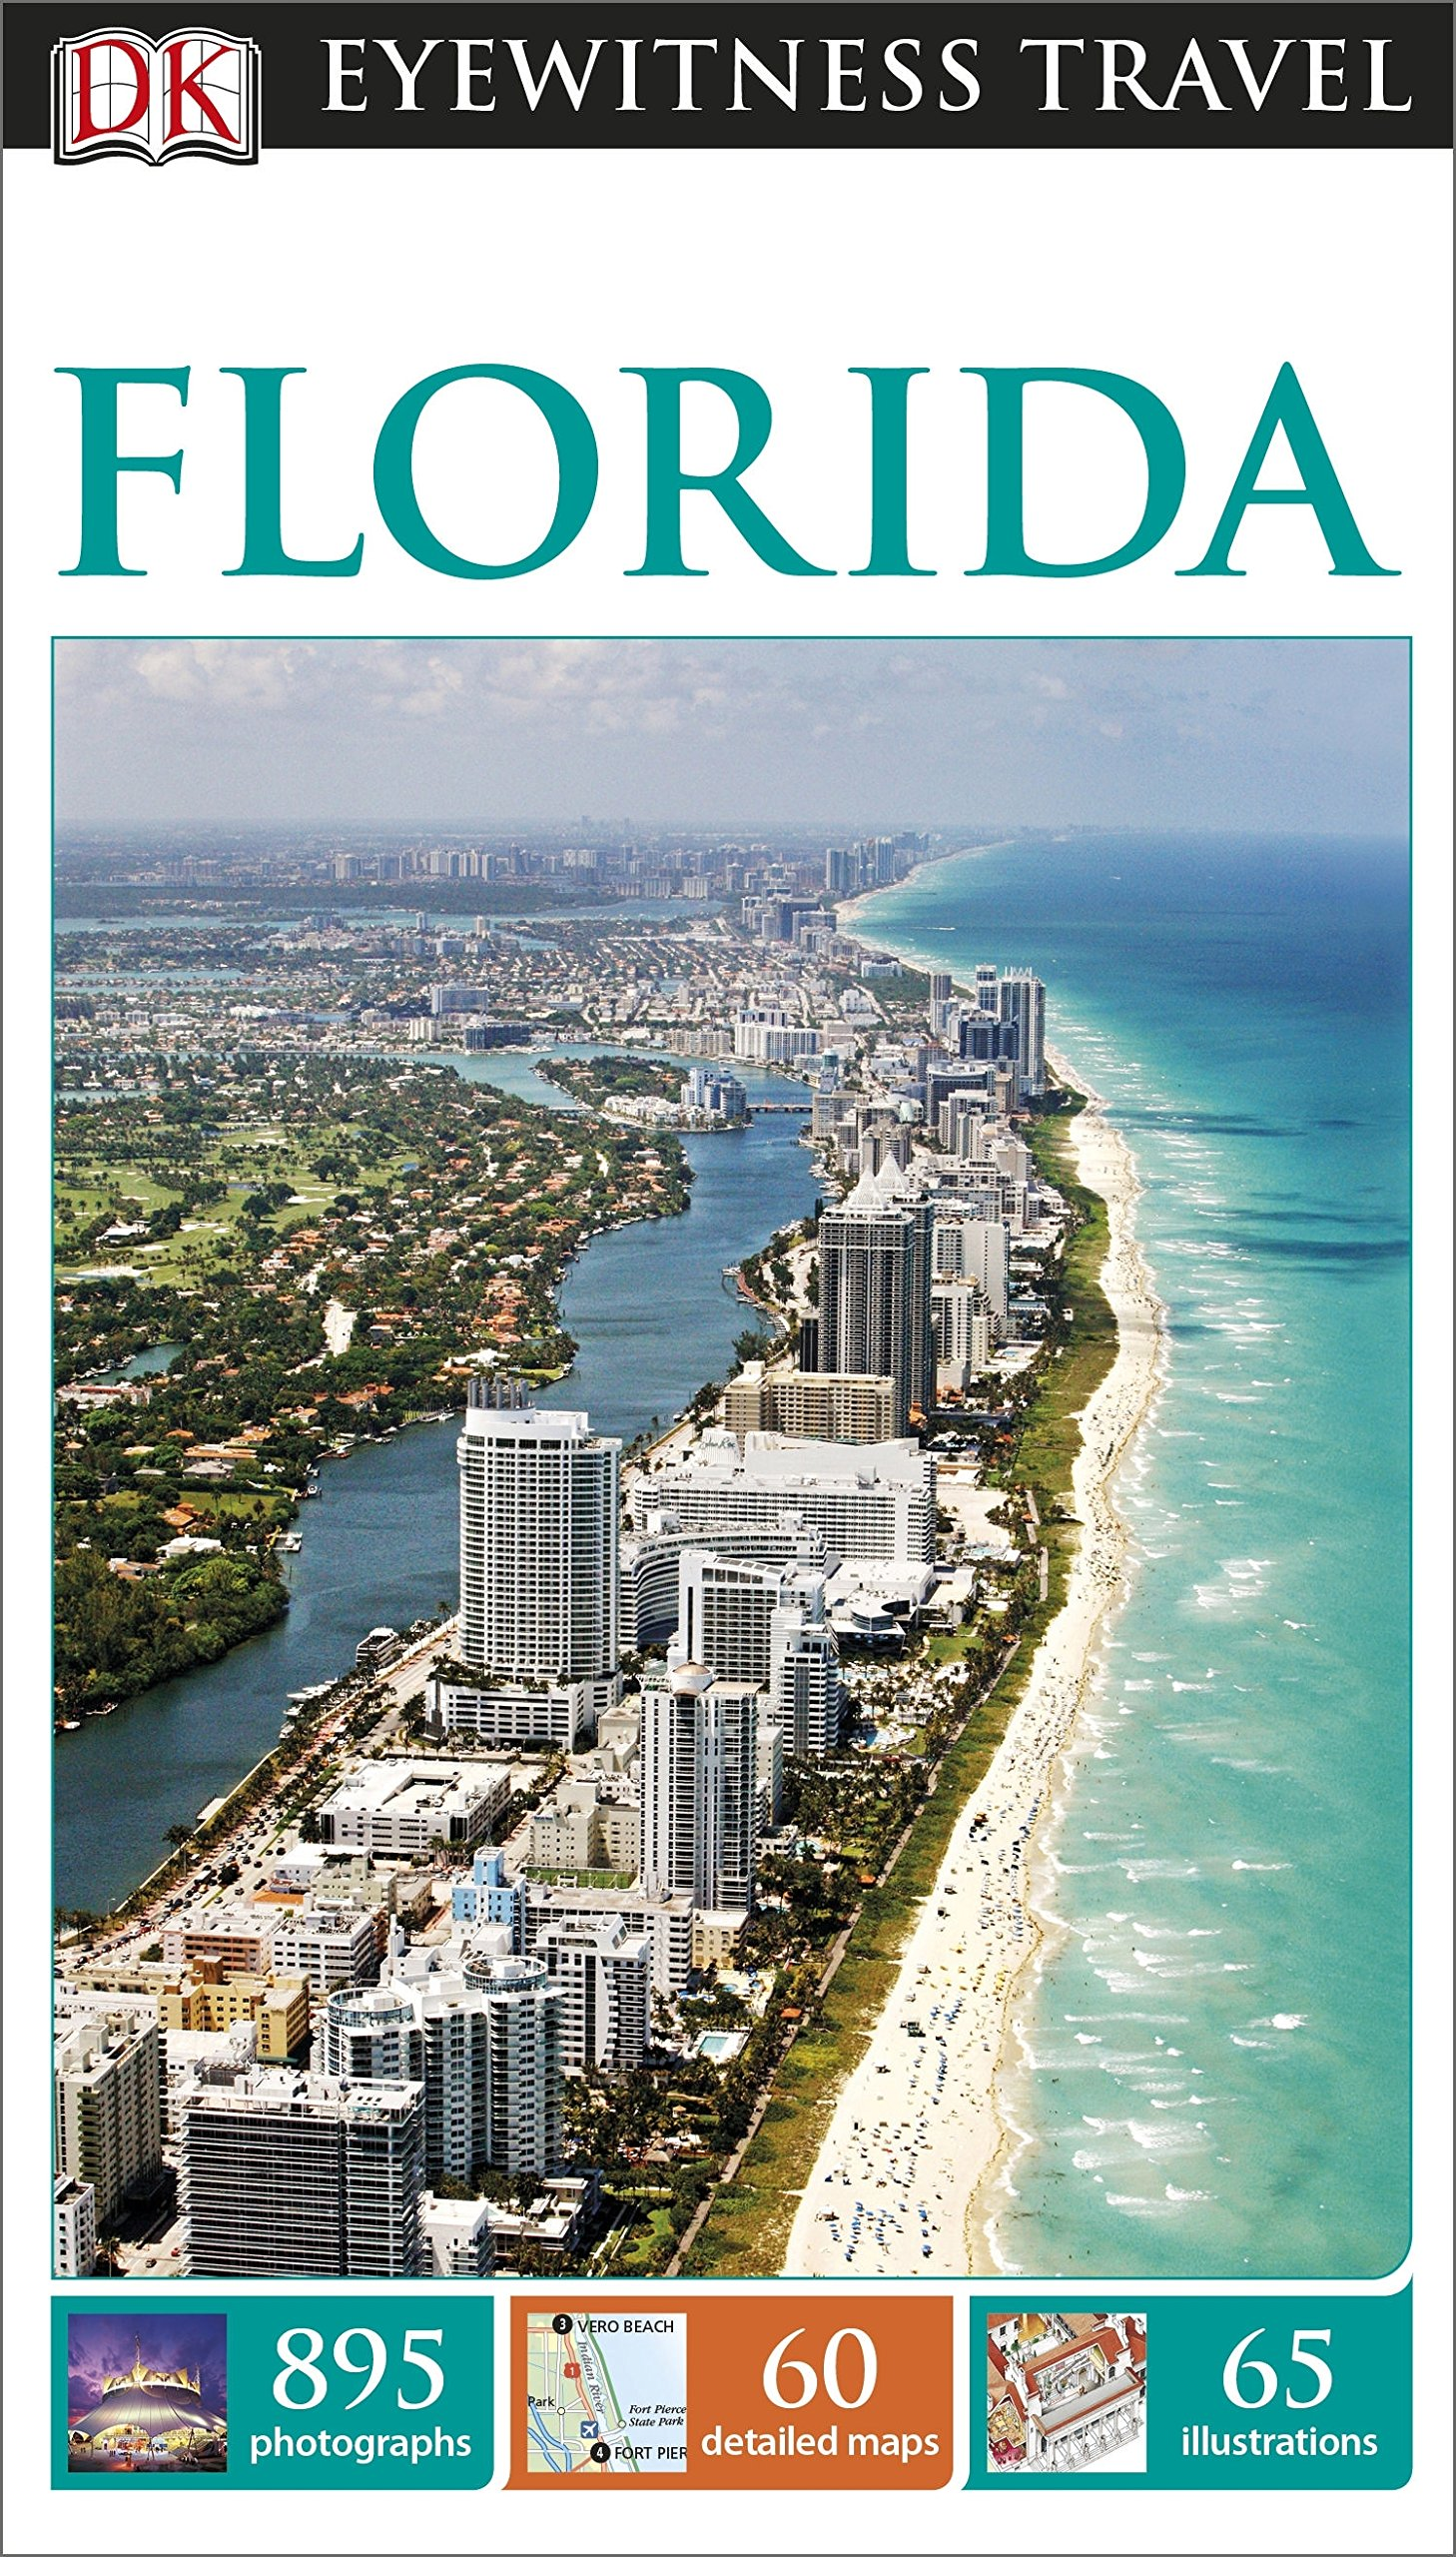 images?q=tbn:ANd9GcQh_l3eQ5xwiPy07kGEXjmjgmBKBRB7H2mRxCGhv1tFWg5c_mWT Cool Travel Guides For Florida Trend that you must See @capturingmomentsphotography.net